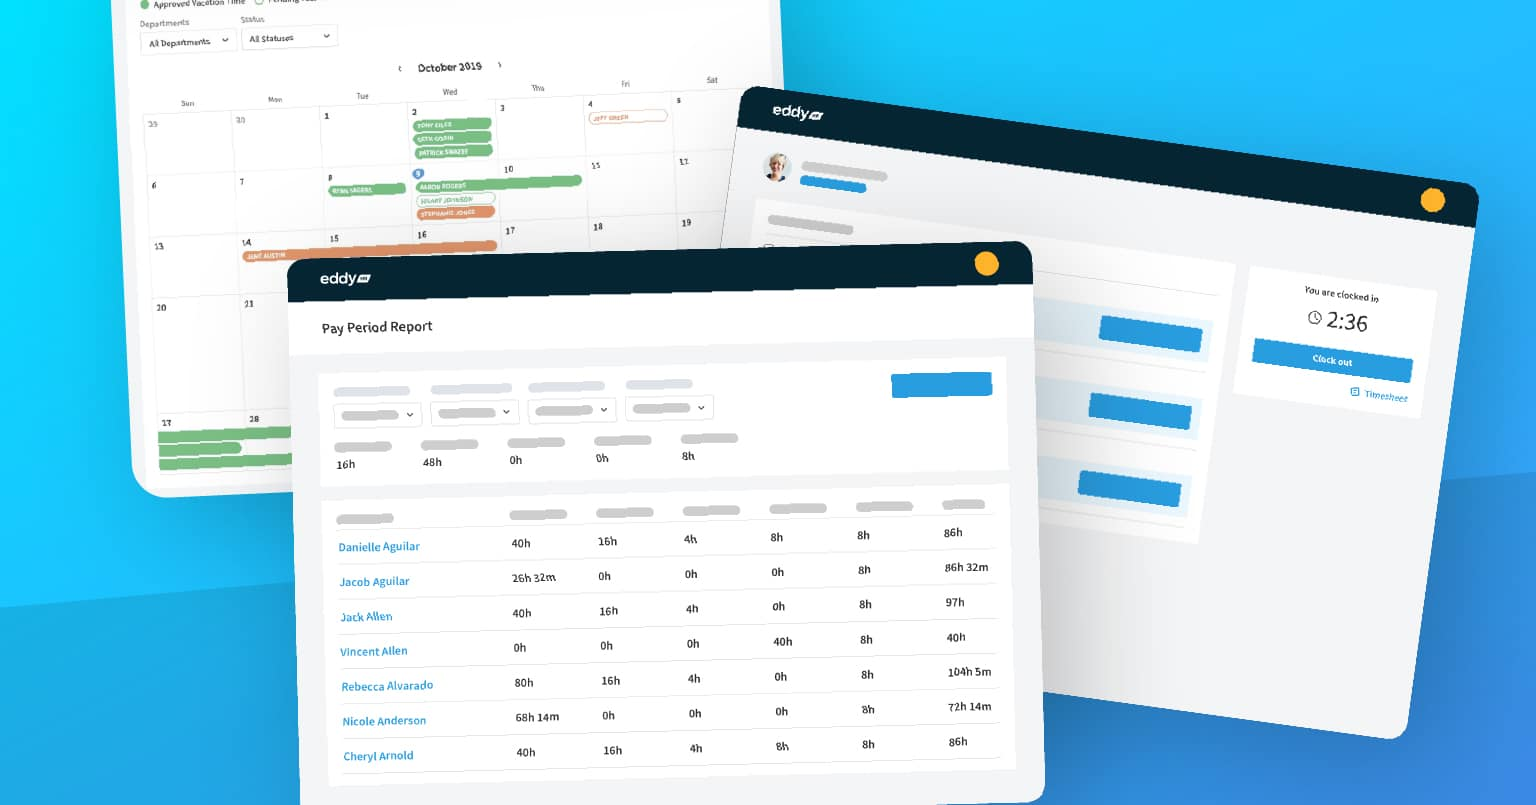 What's New in EddyHR- Time Tracking, Payroll, and Who's Out Calendar